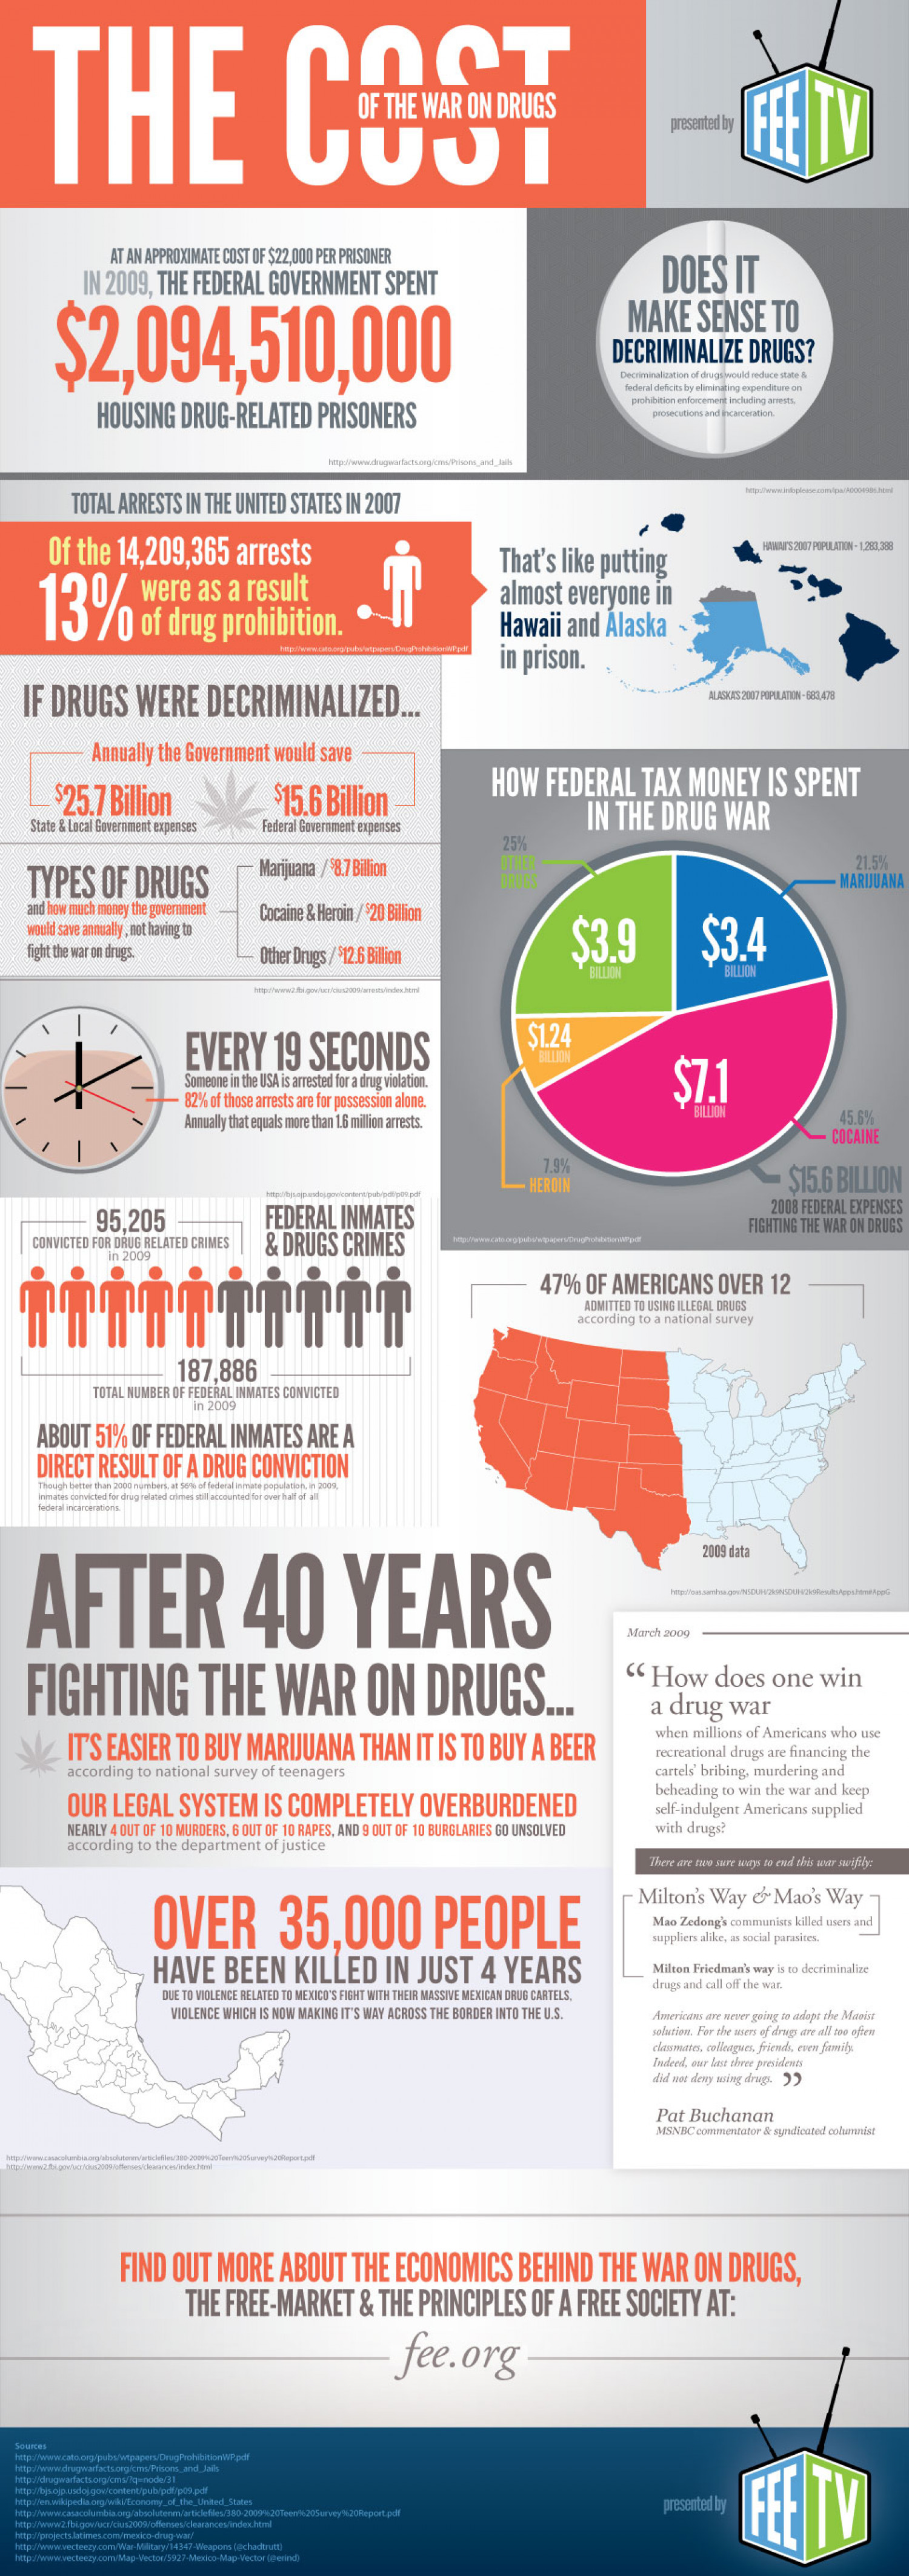 the war on drugs in the united states is costly and ineffective